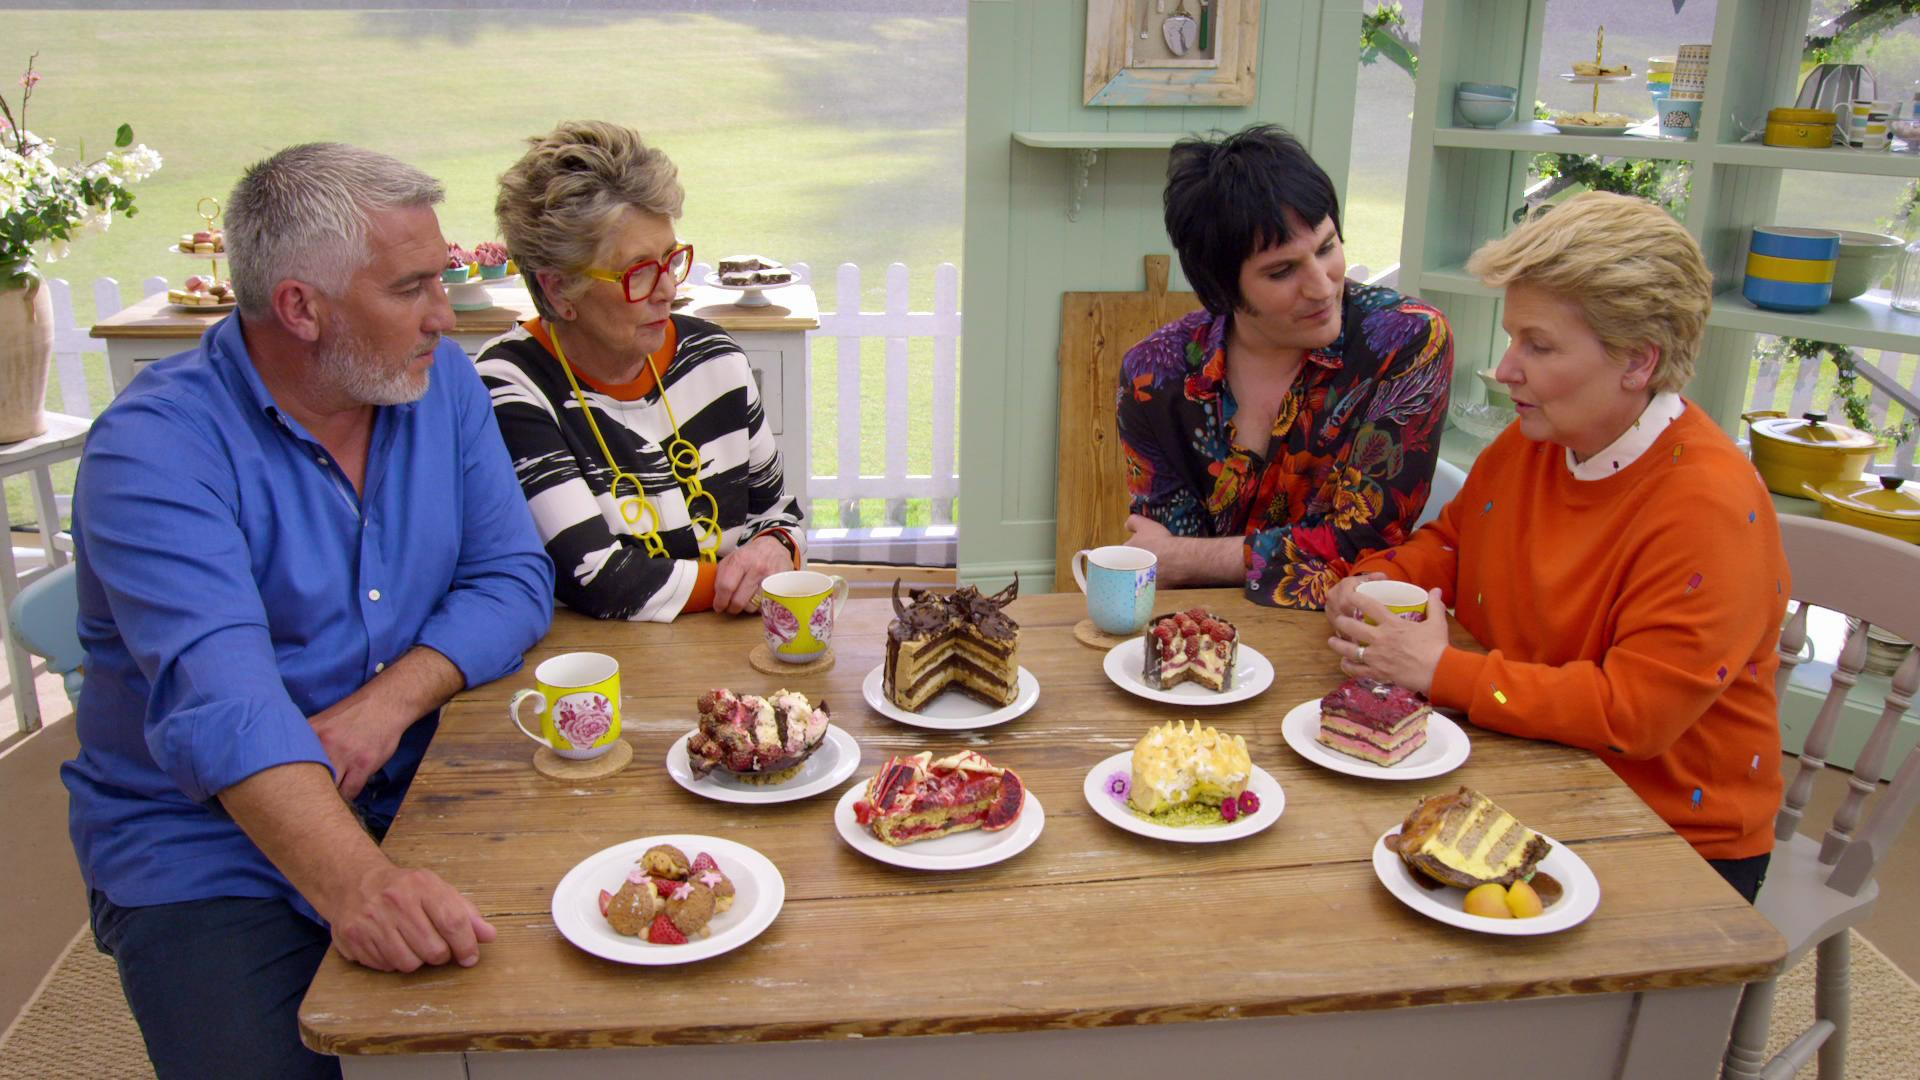 Noel Fielding, Sandi Toksvig, Prue Leith, and Paul Hollywood in The Great British Bake Off (2010)